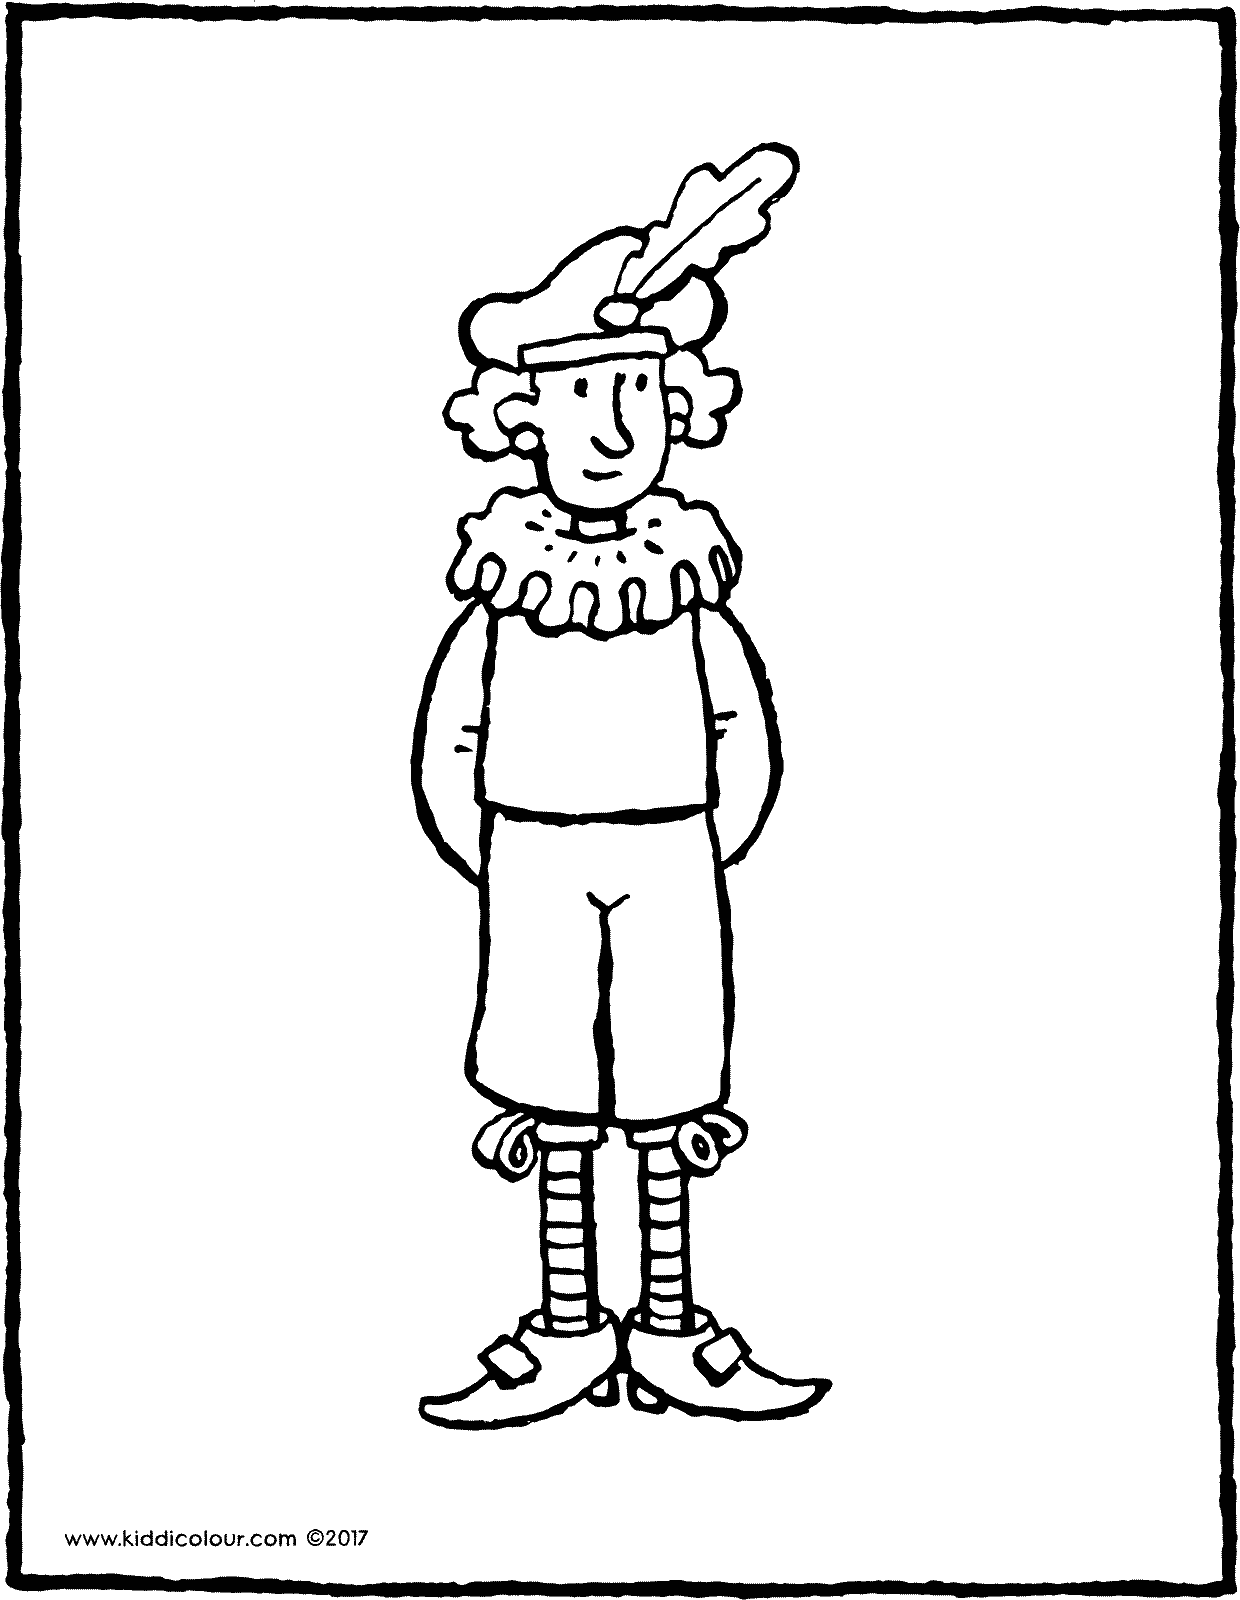 Black Pete colouring page page drawing picture 04V